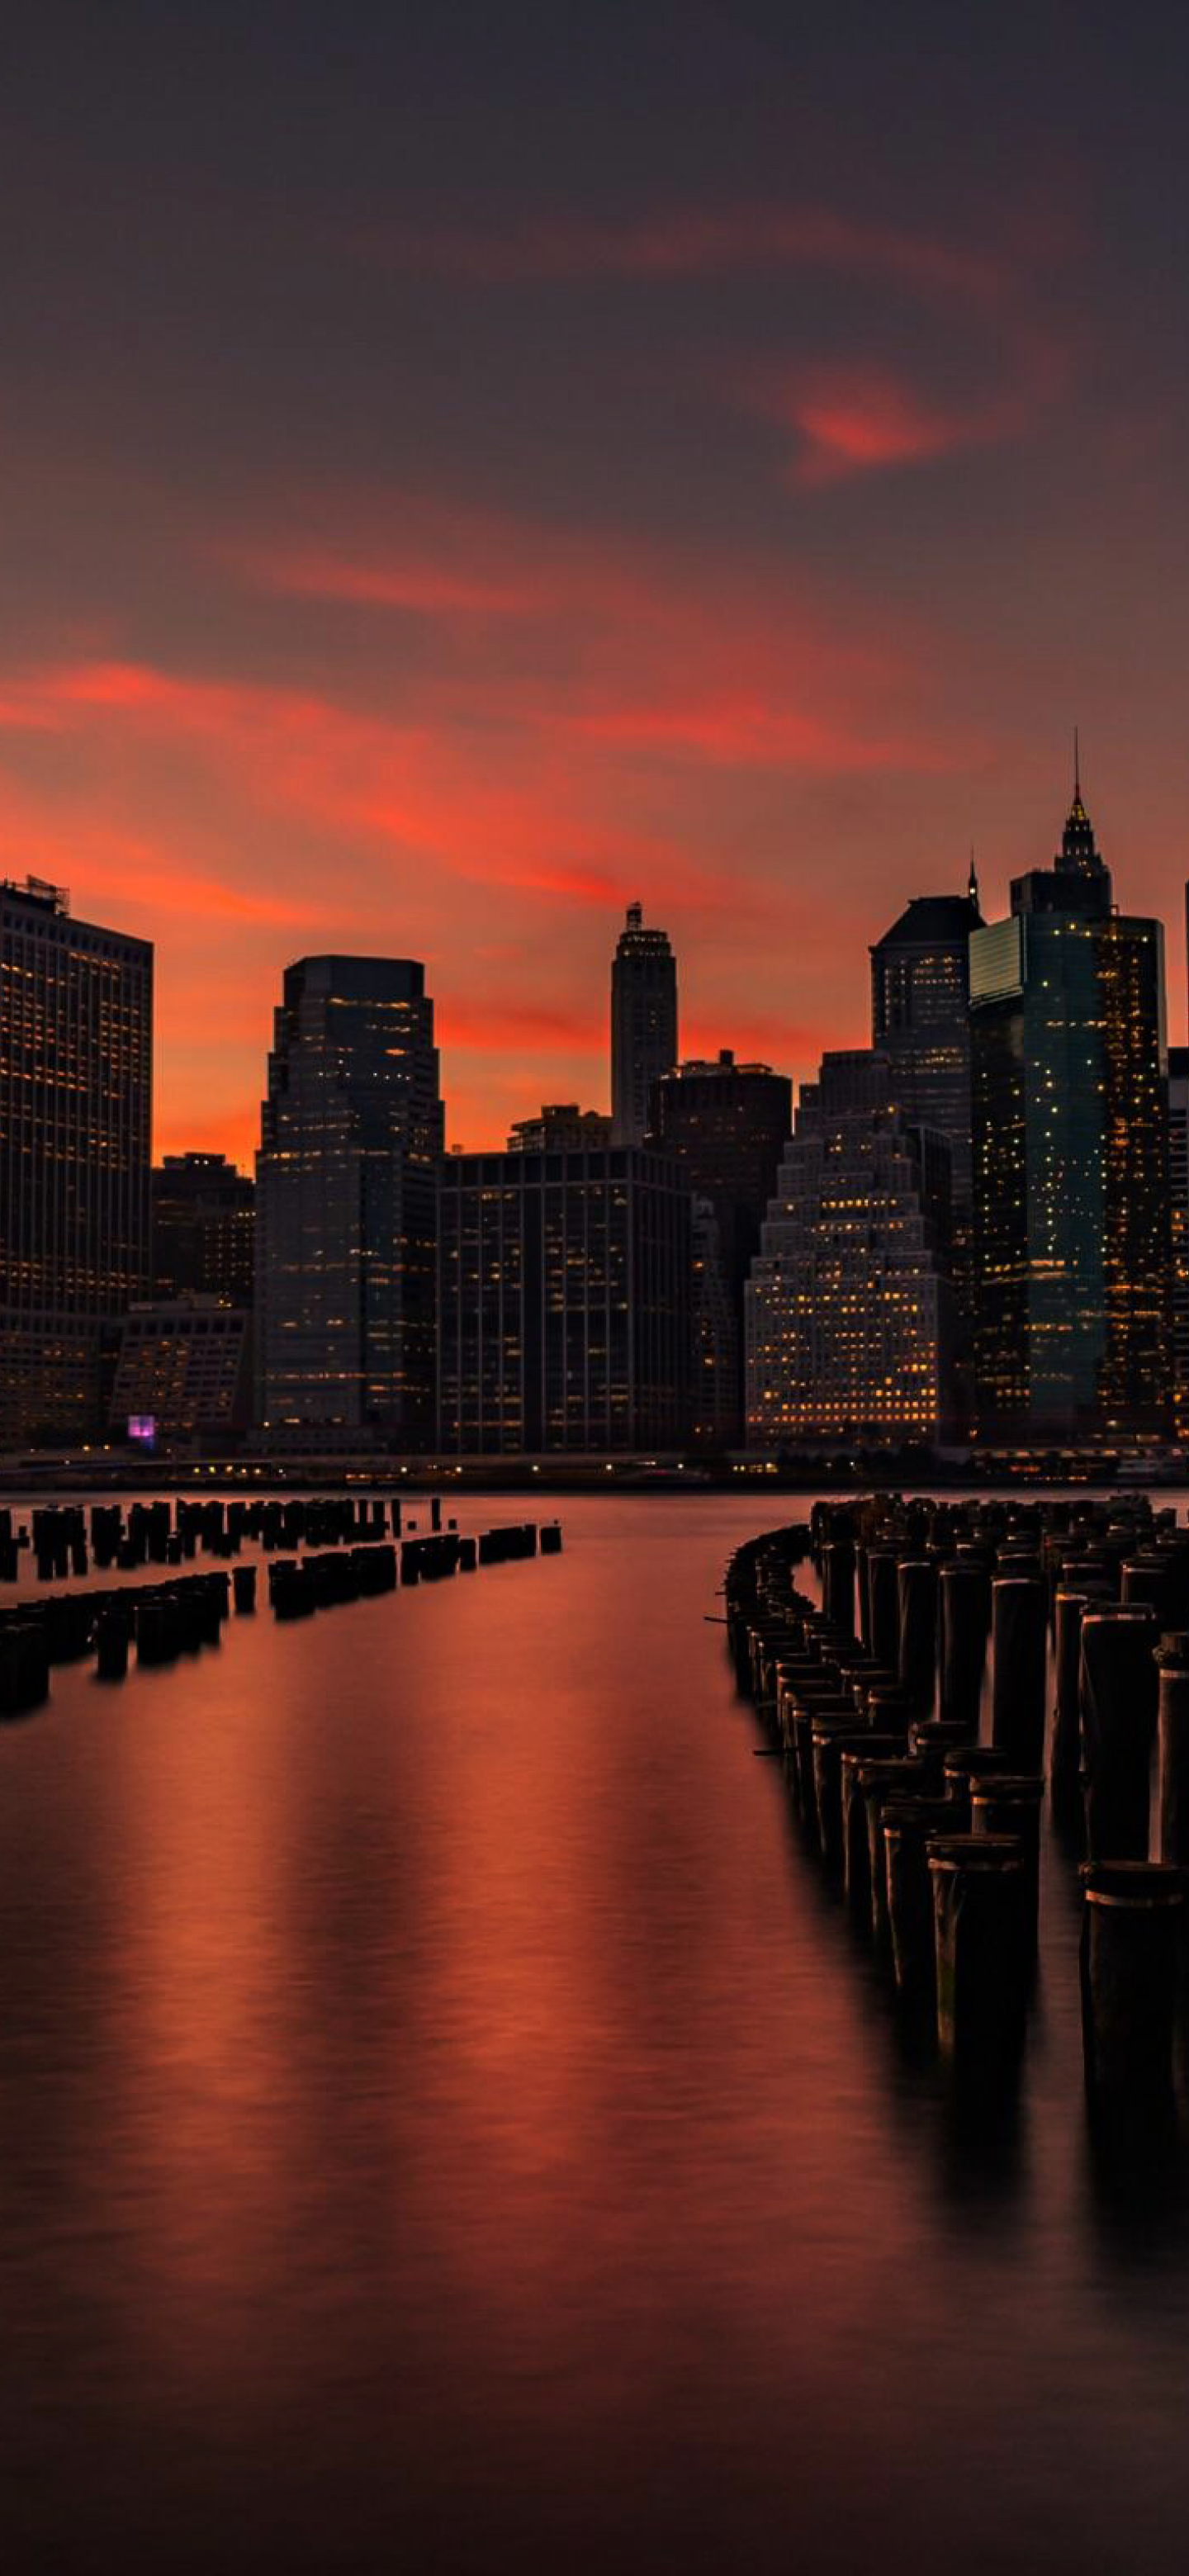 1440x3120 New York Sunset 1440x3120 Resolution Wallpaper Hd Nature 4k Wallpapers Images Photos And Background